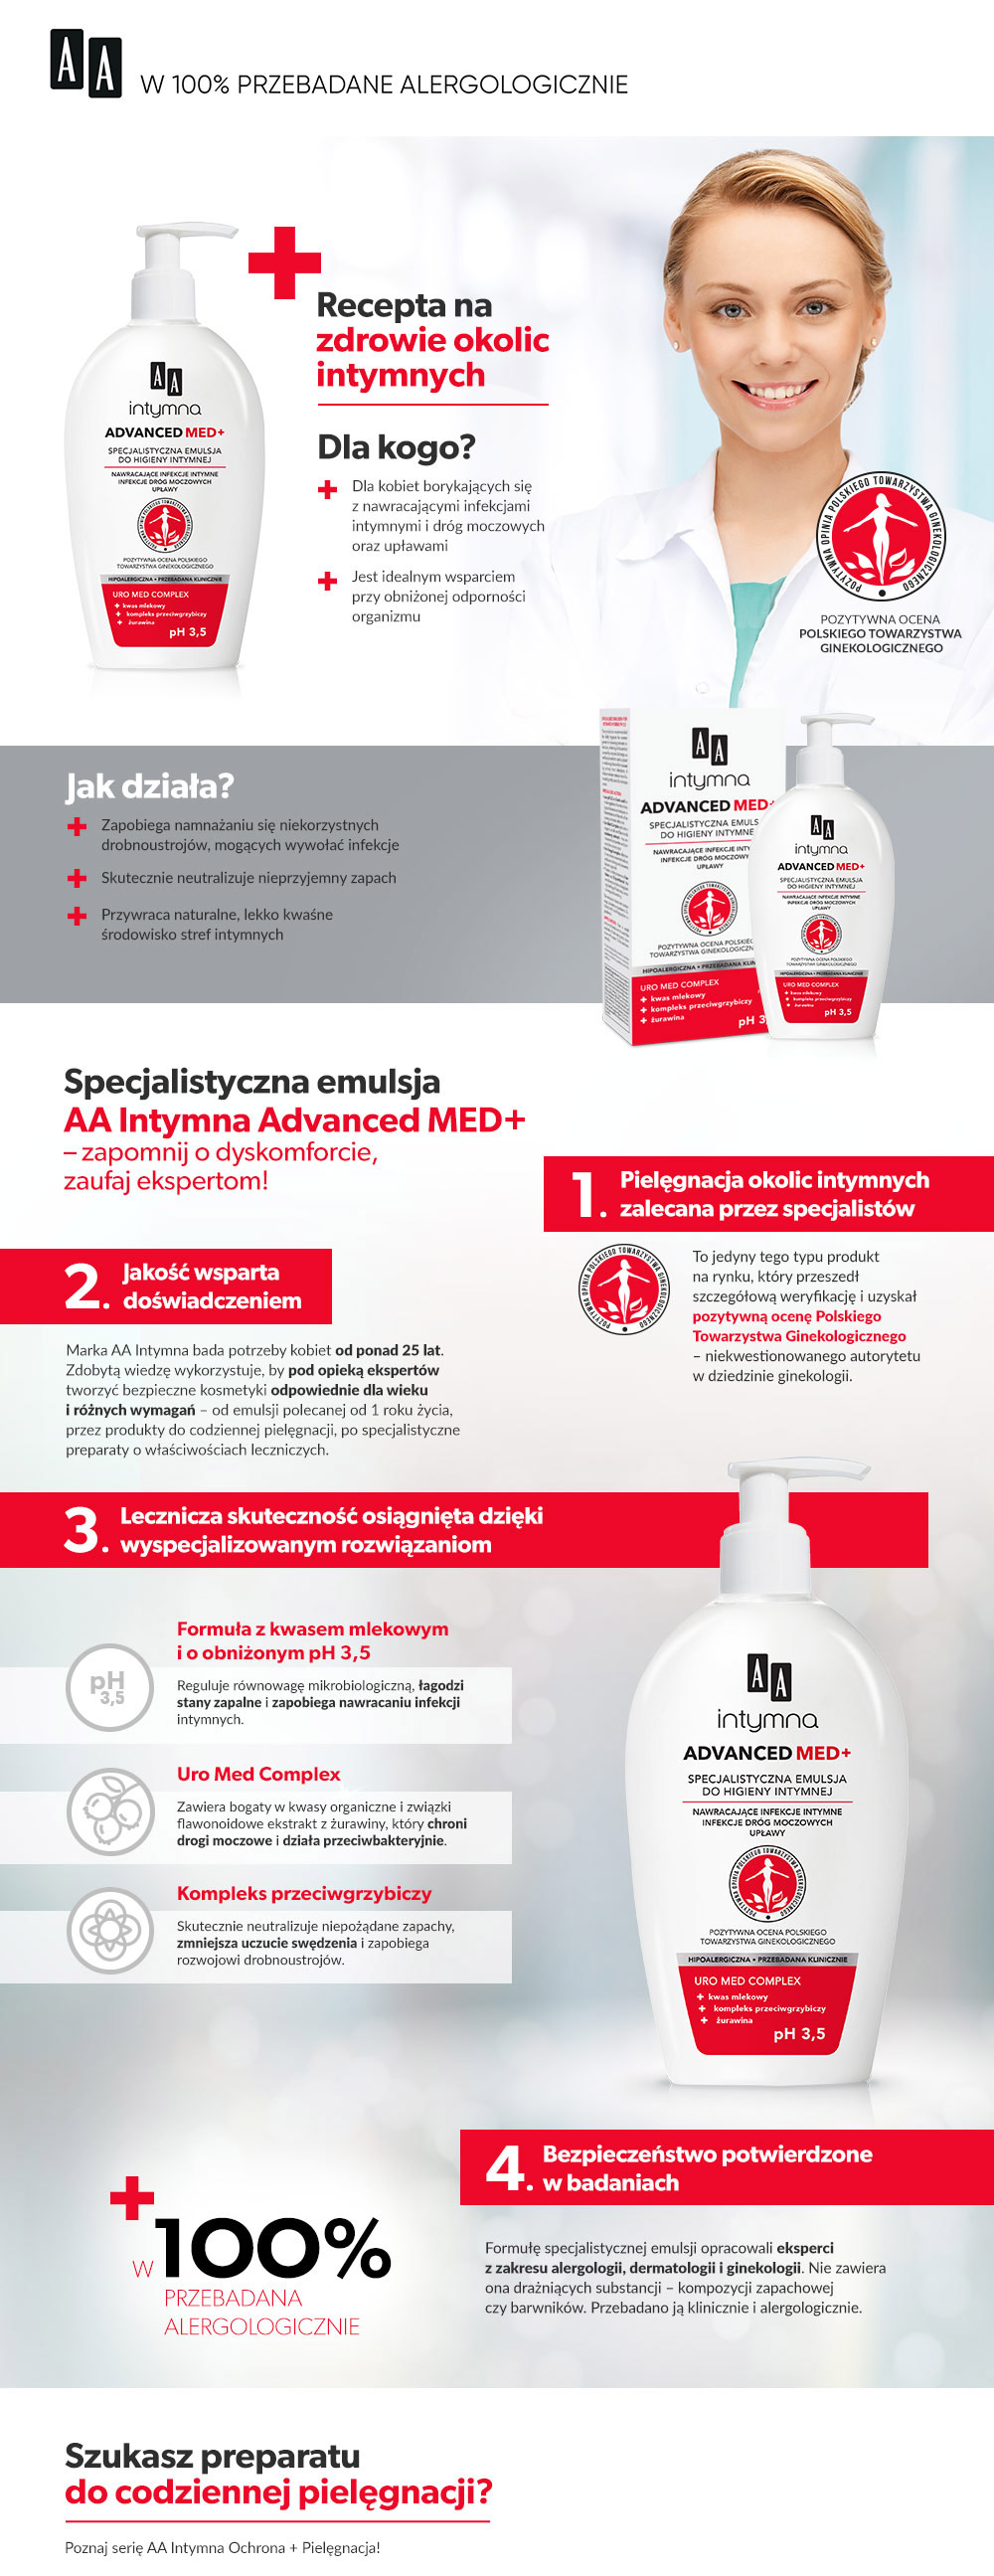 AA Intymna Advanced MED